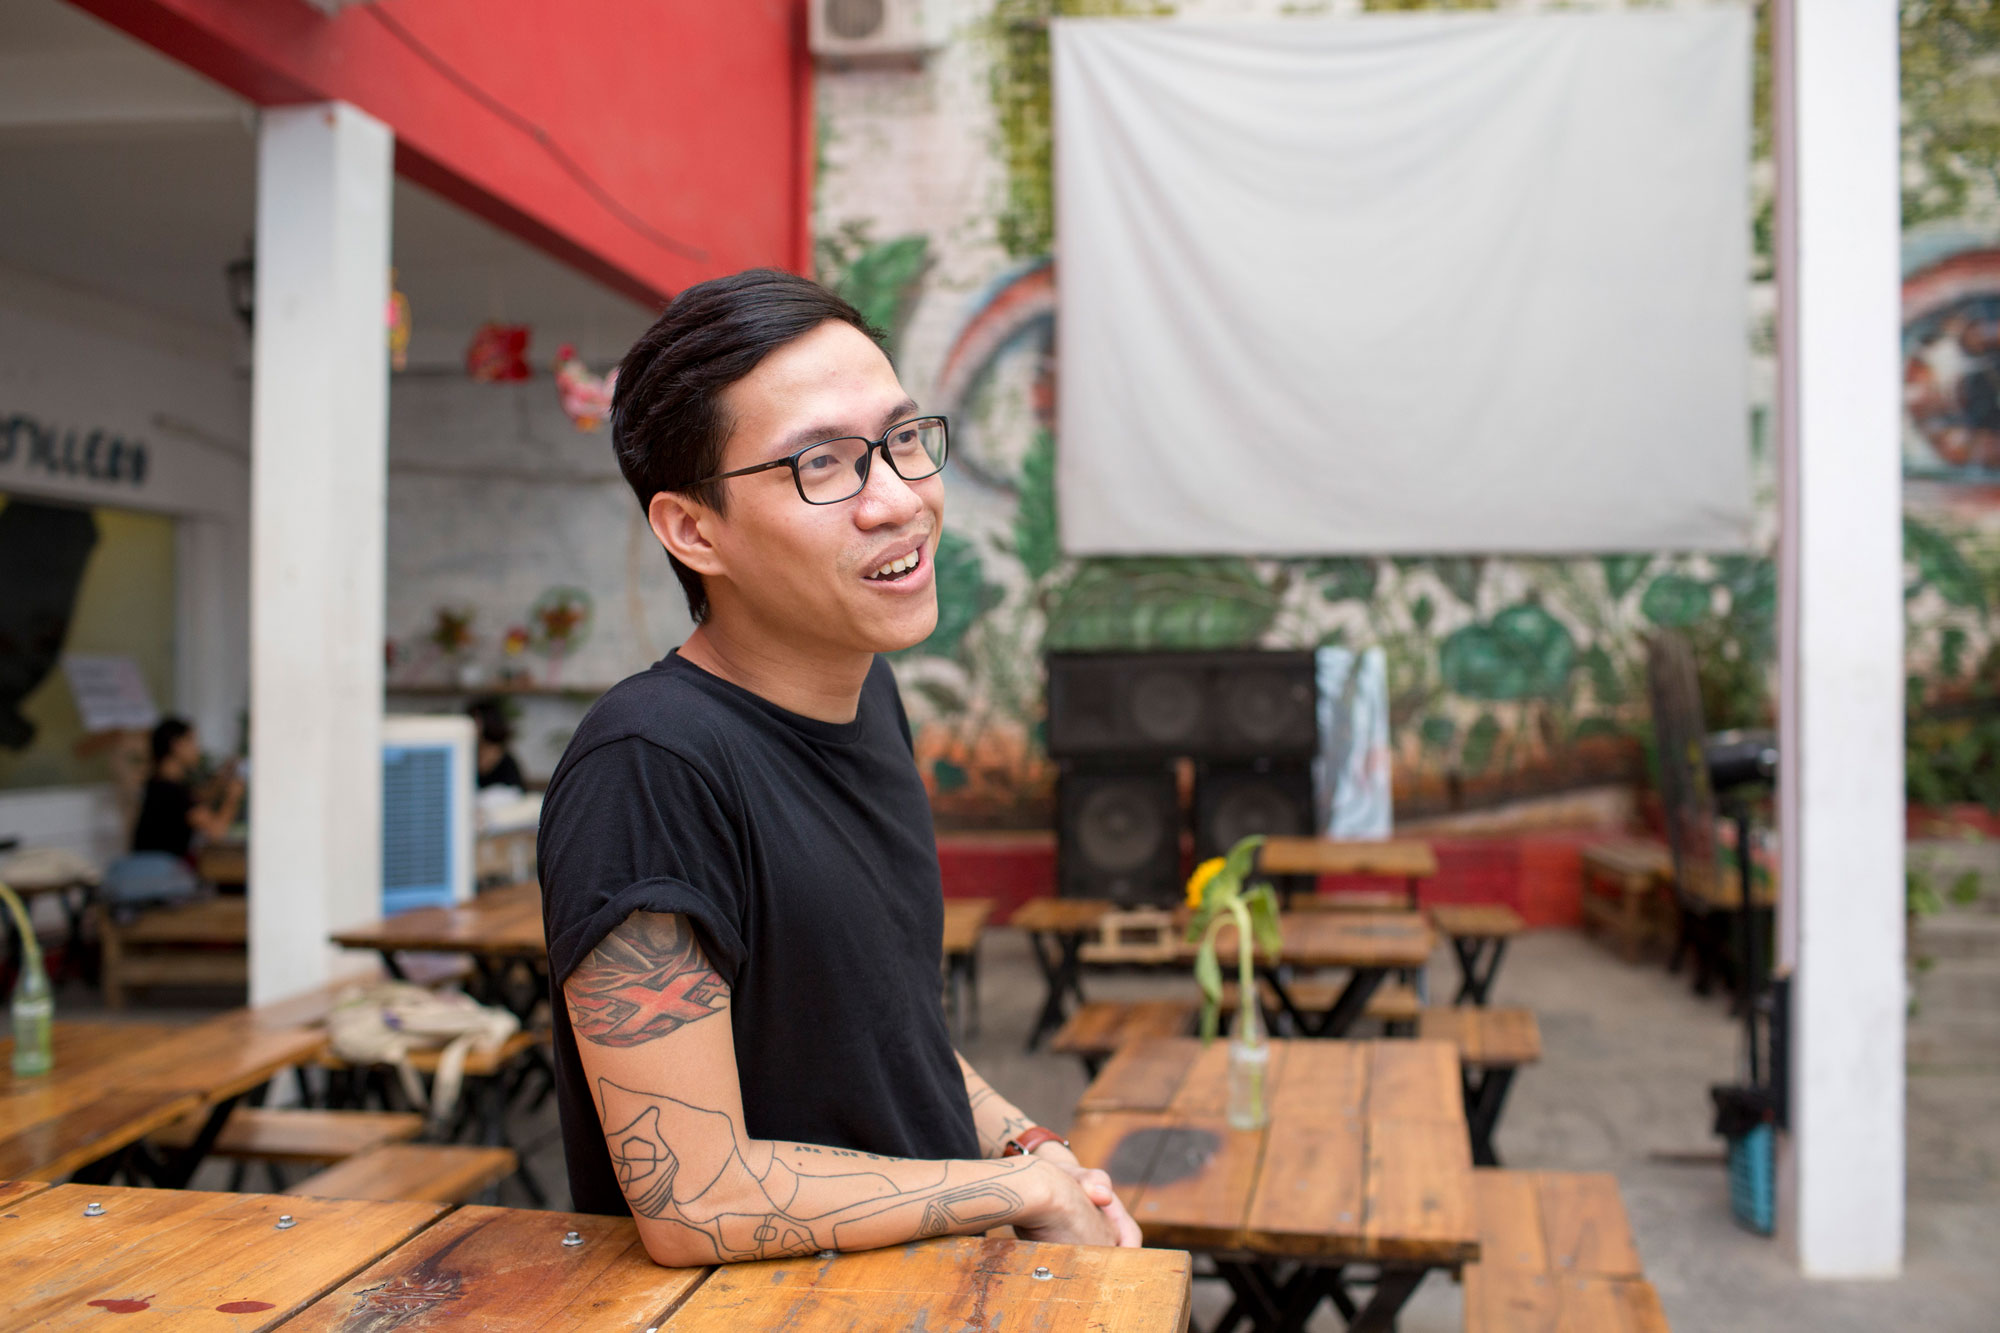 Hanoi Rock City: How This Team Sparked A City's Love For Live Music